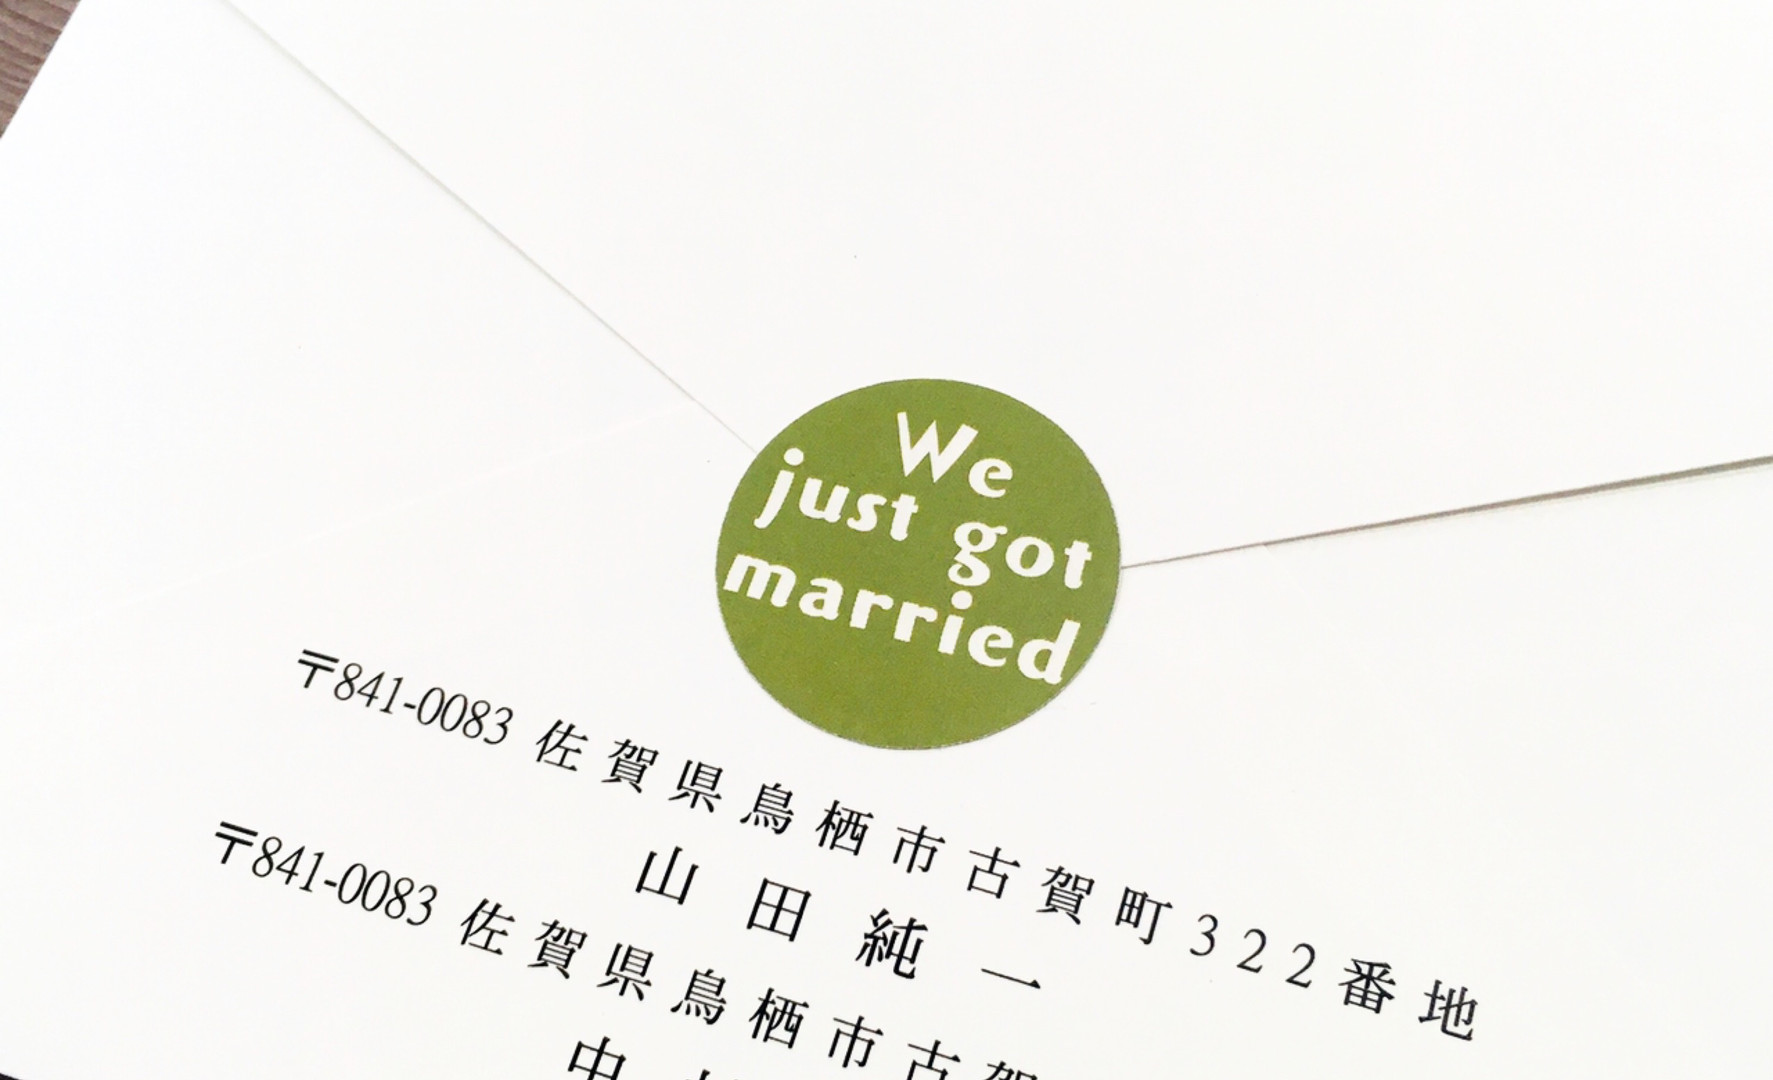 Just married デザイン5-シール.jpg